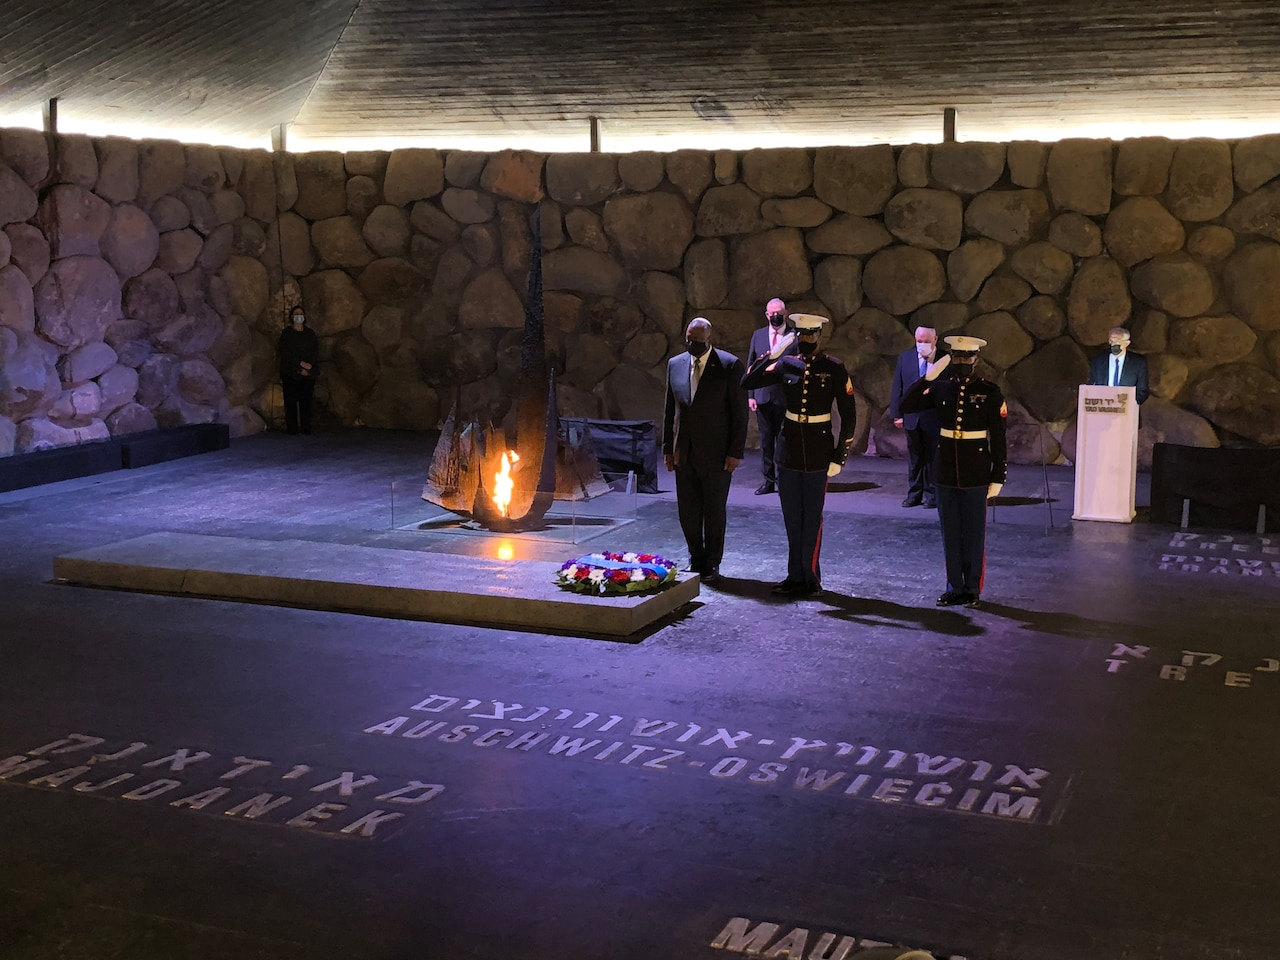 A man stands at attention next to two Marines after laying a wreath at the World Holocaust Remembrance Center.